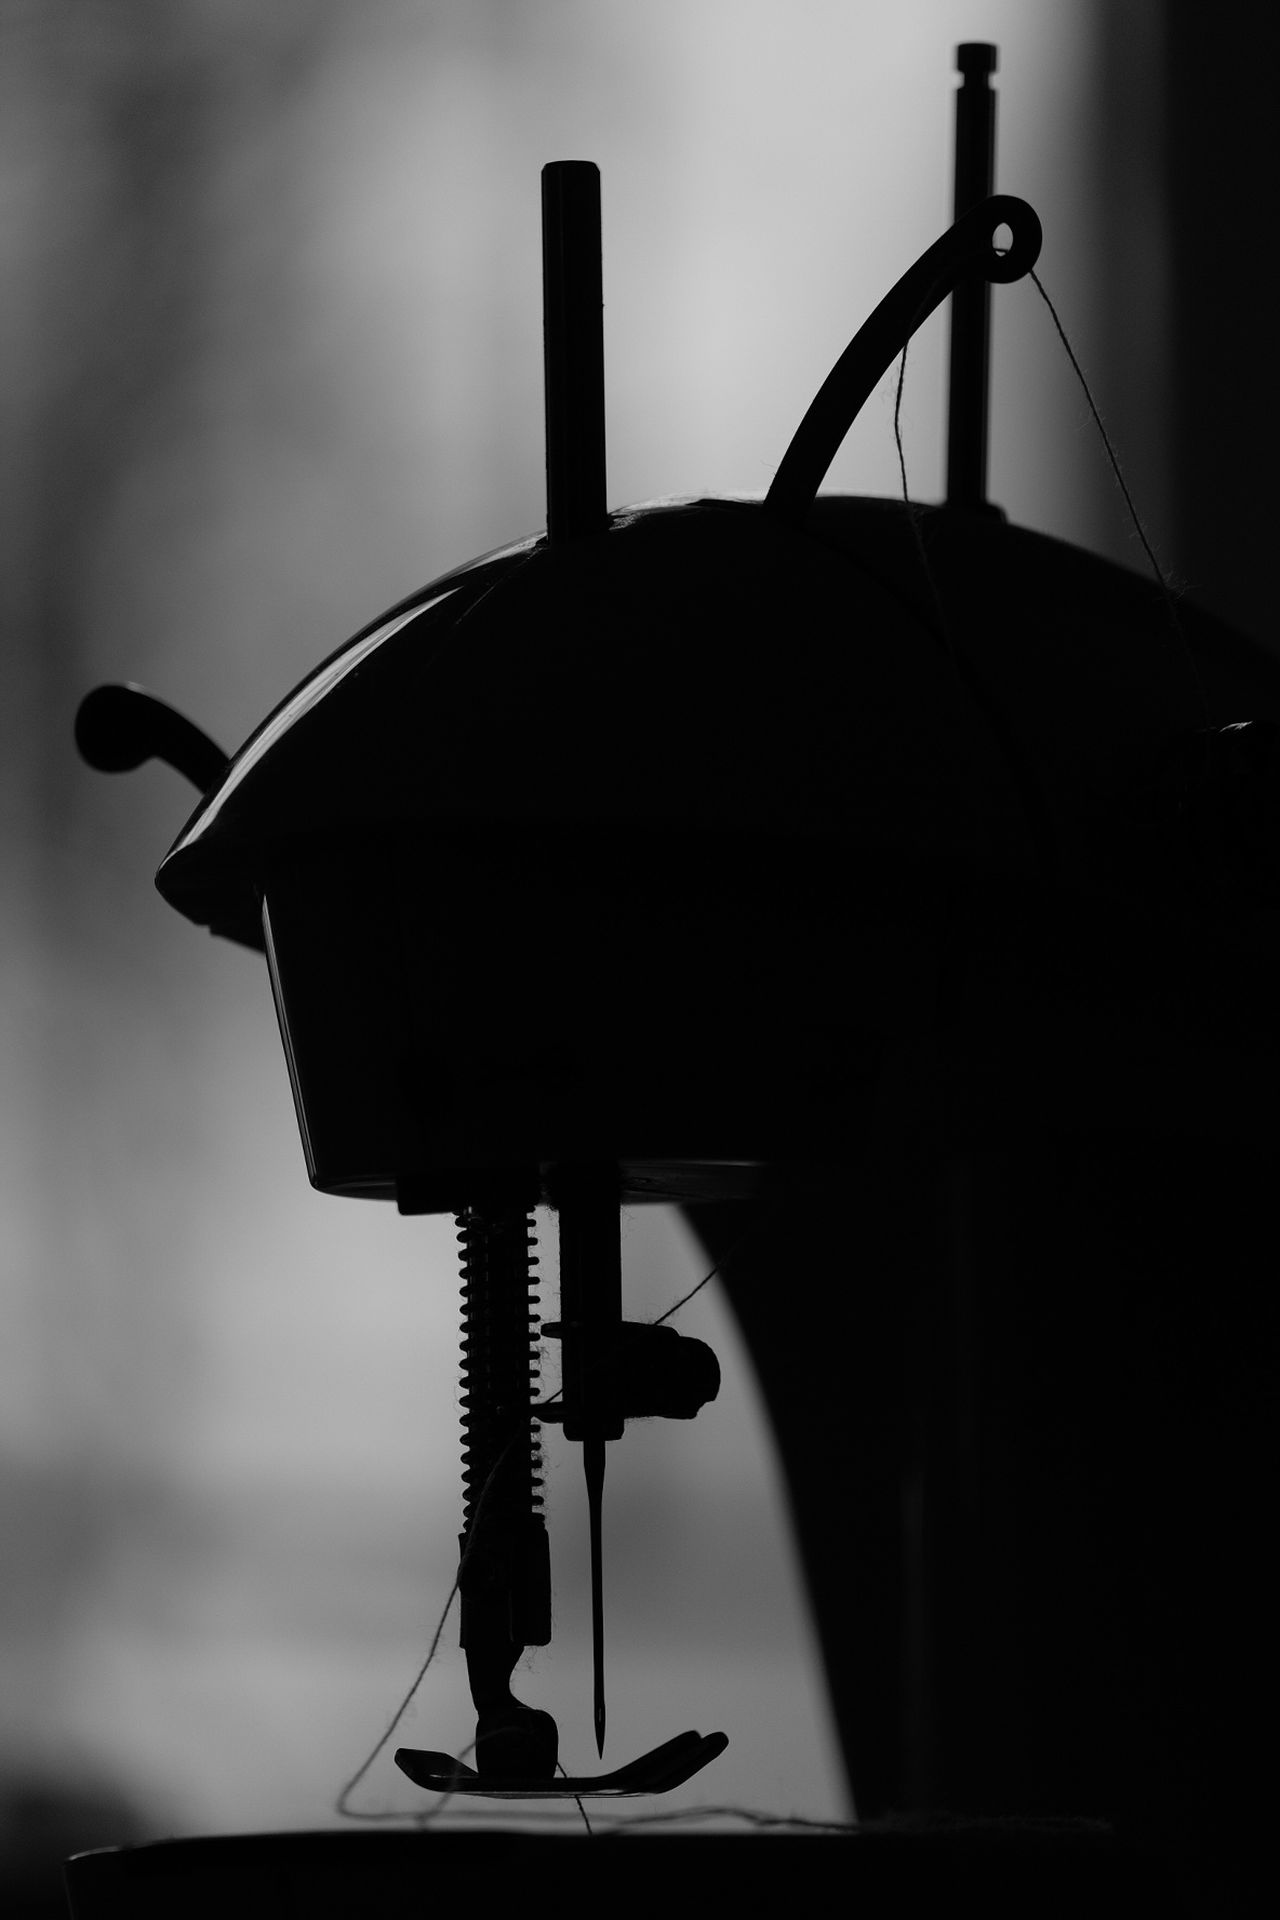 Sewing Machine Sewing Photography Black And White INDONESIA Sewing Jakarta Artphotography Blackandwhite Photography Silhouette Sewing Machine Fine Art Photography Bwphotography Sew FUJIFILM X-T1 Fujifilm Nature